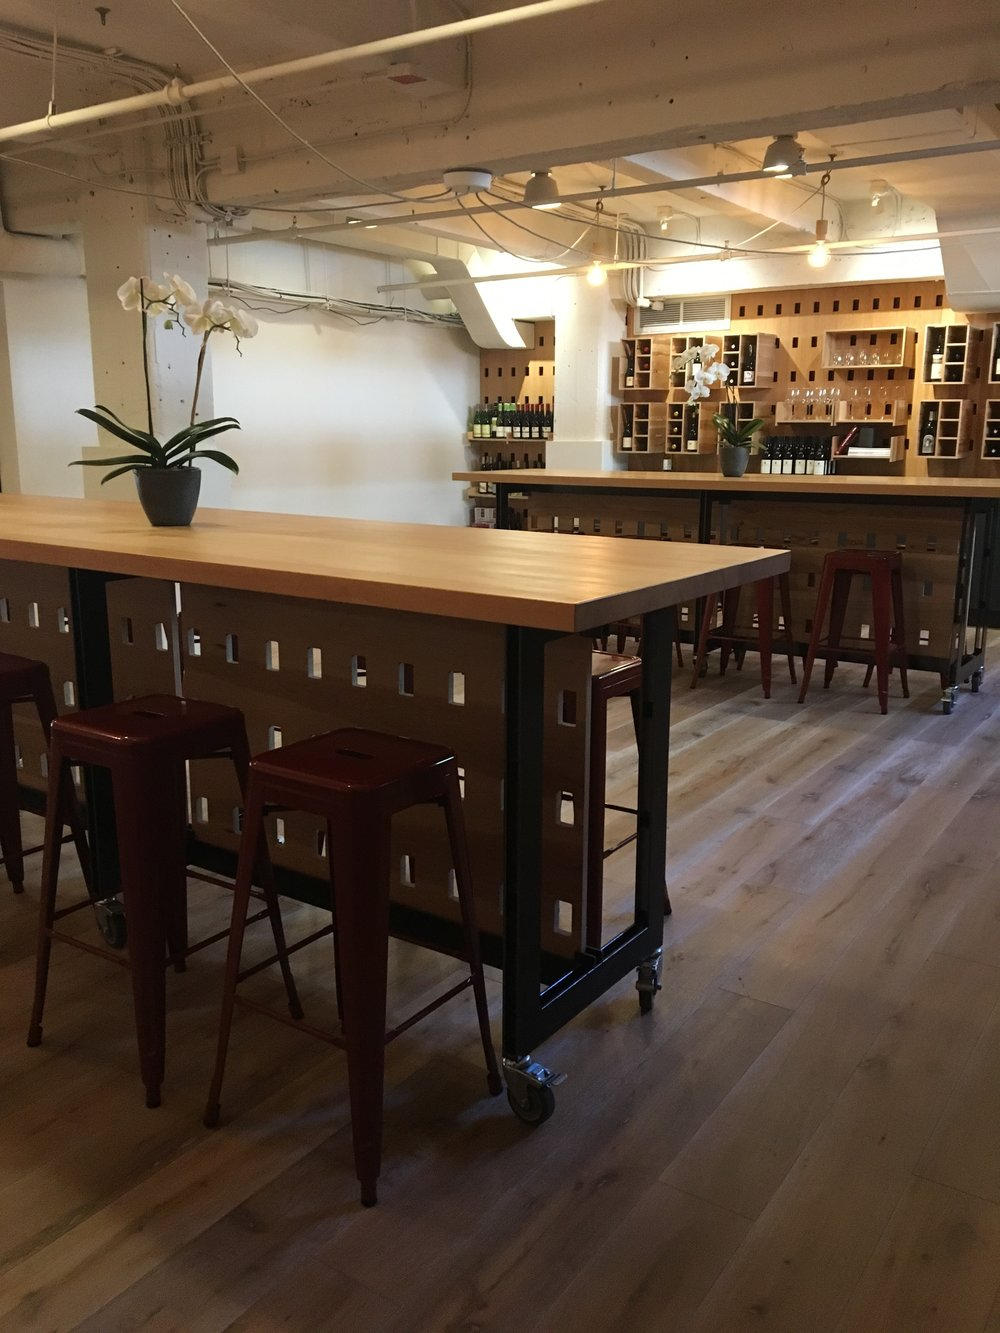 Your private wine cave - A special events space/tasting room is available to rent at the back of Mayhew Wine Shop.  It is accented by sliding barn doors that can be open to the rest of the shop or closed for a more private feel.  The tasting room has 2 large rustic wood tasting tables, custom cabinetry and surfaces, and can accommodate up to 50 people.  The original stone wall in the room creates an authentic wine cave feel.